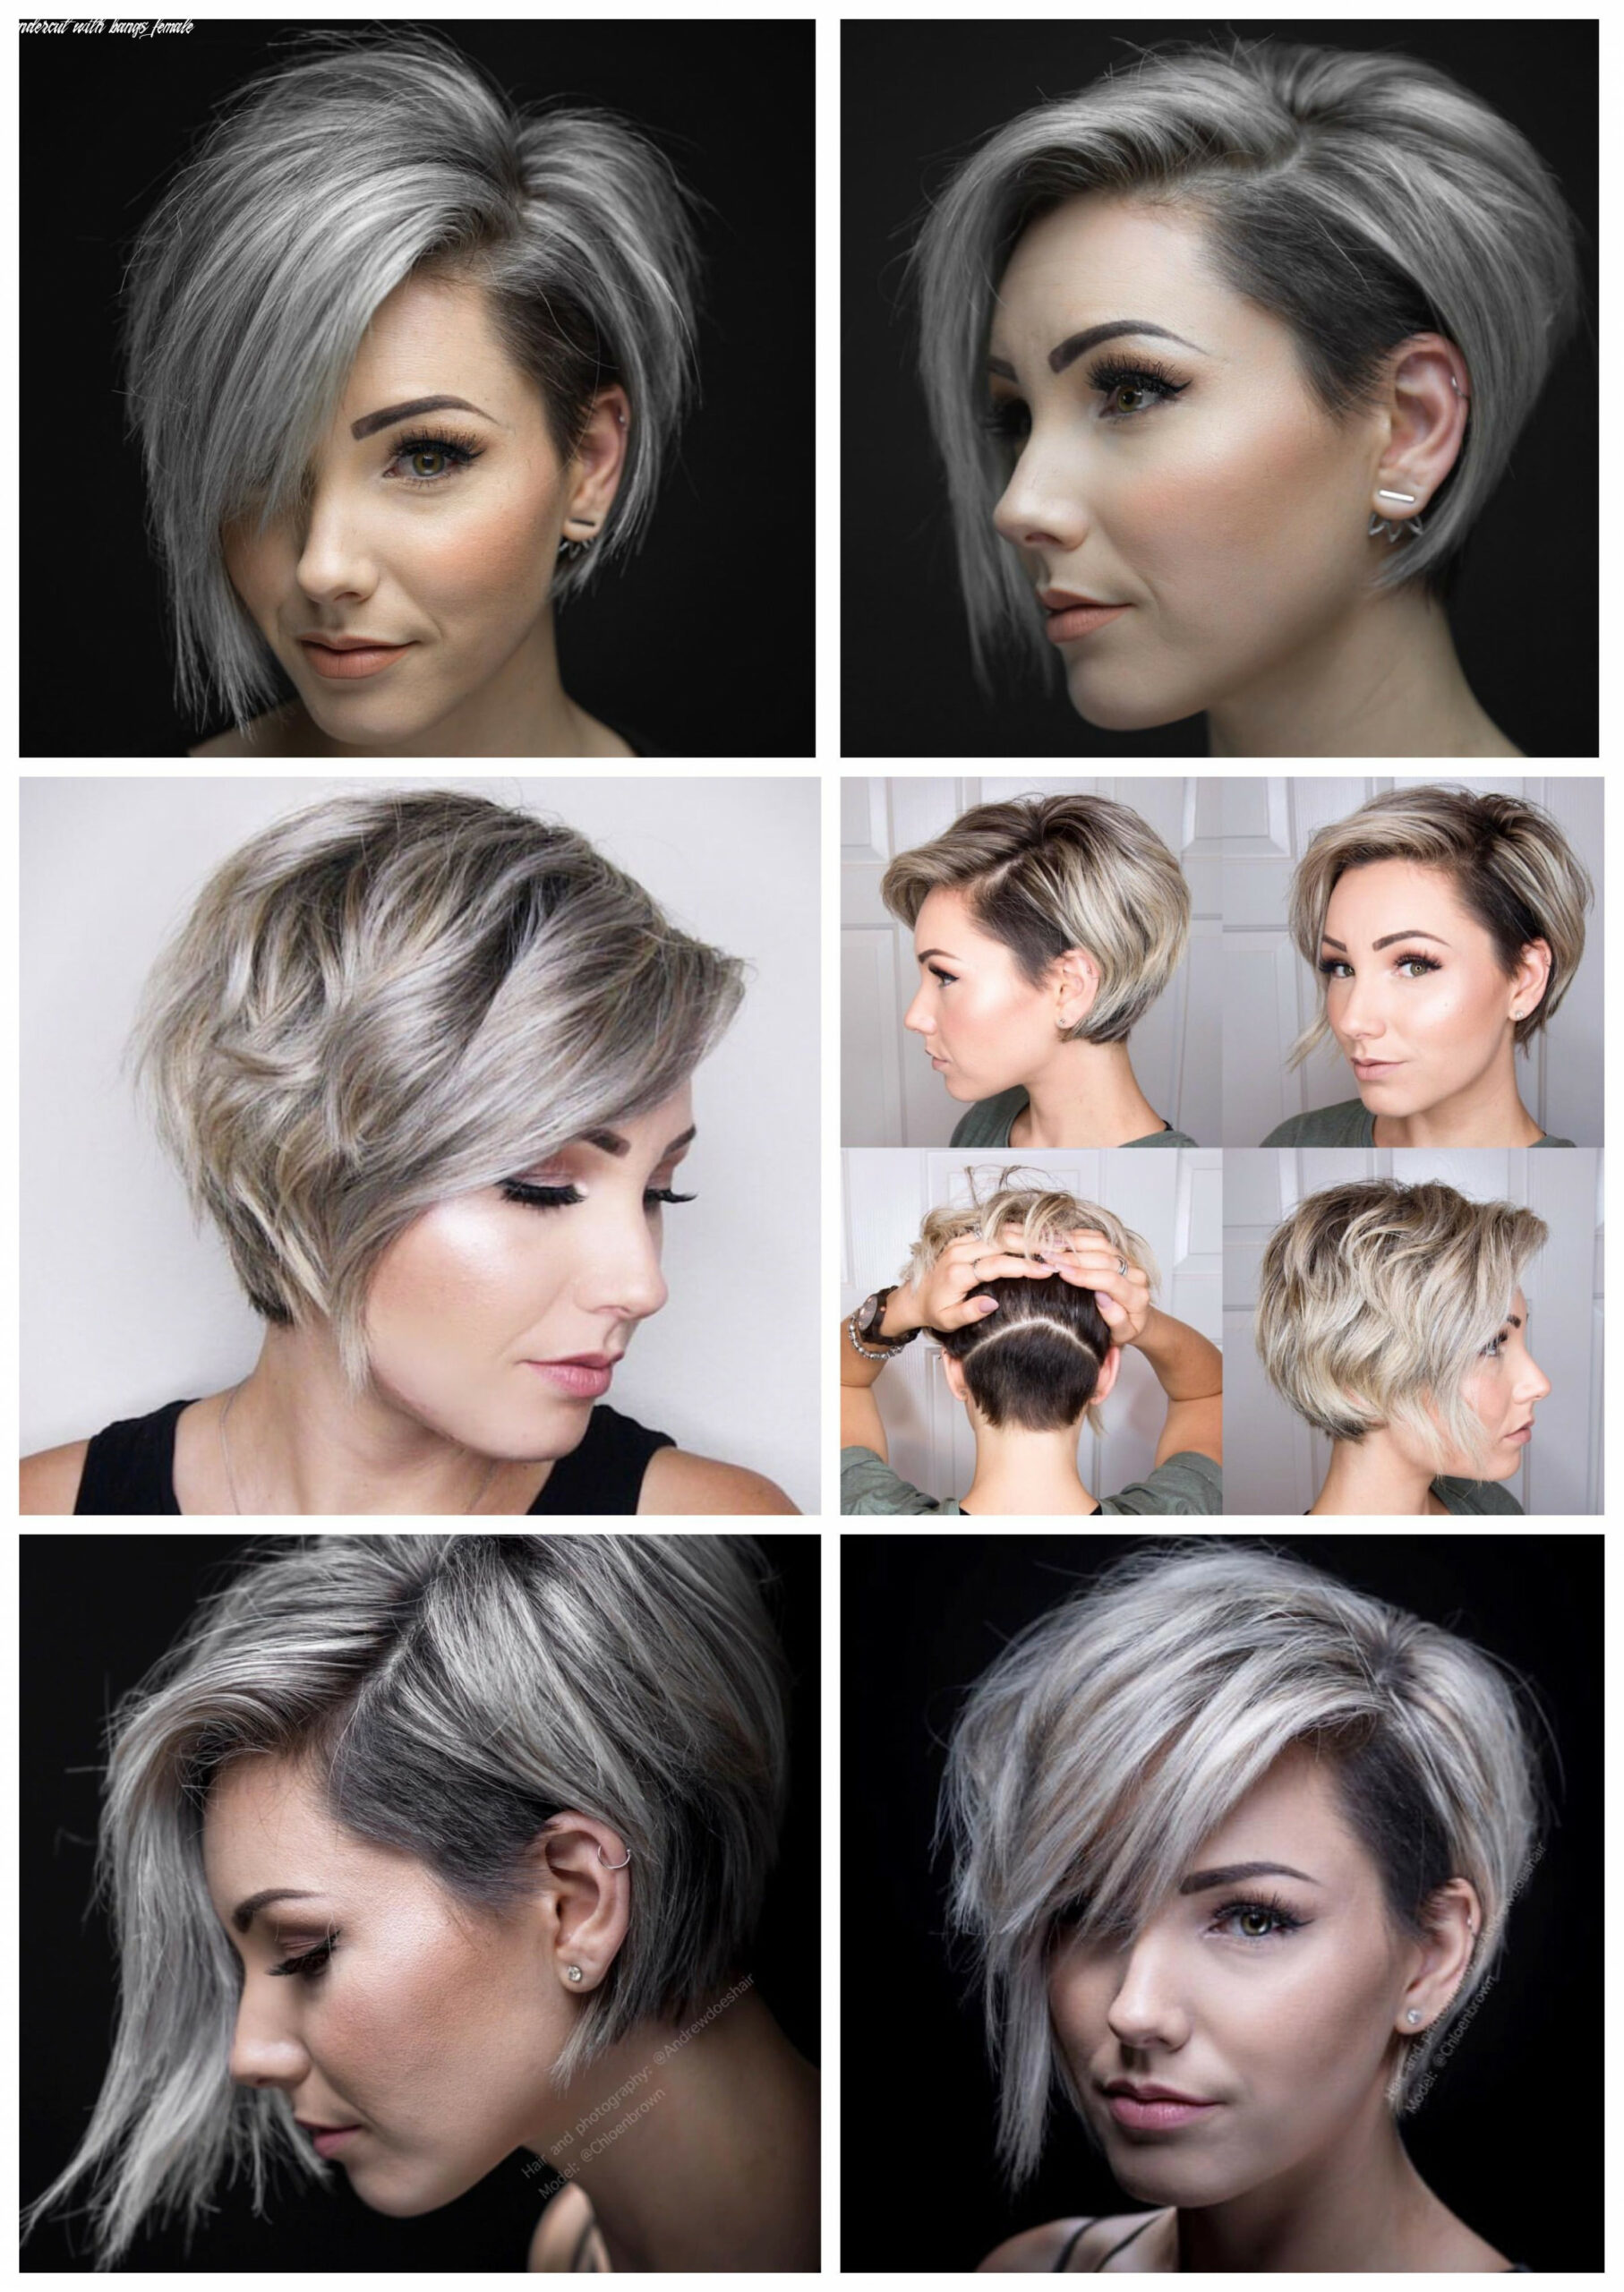 Pin on beauty undercut with bangs female